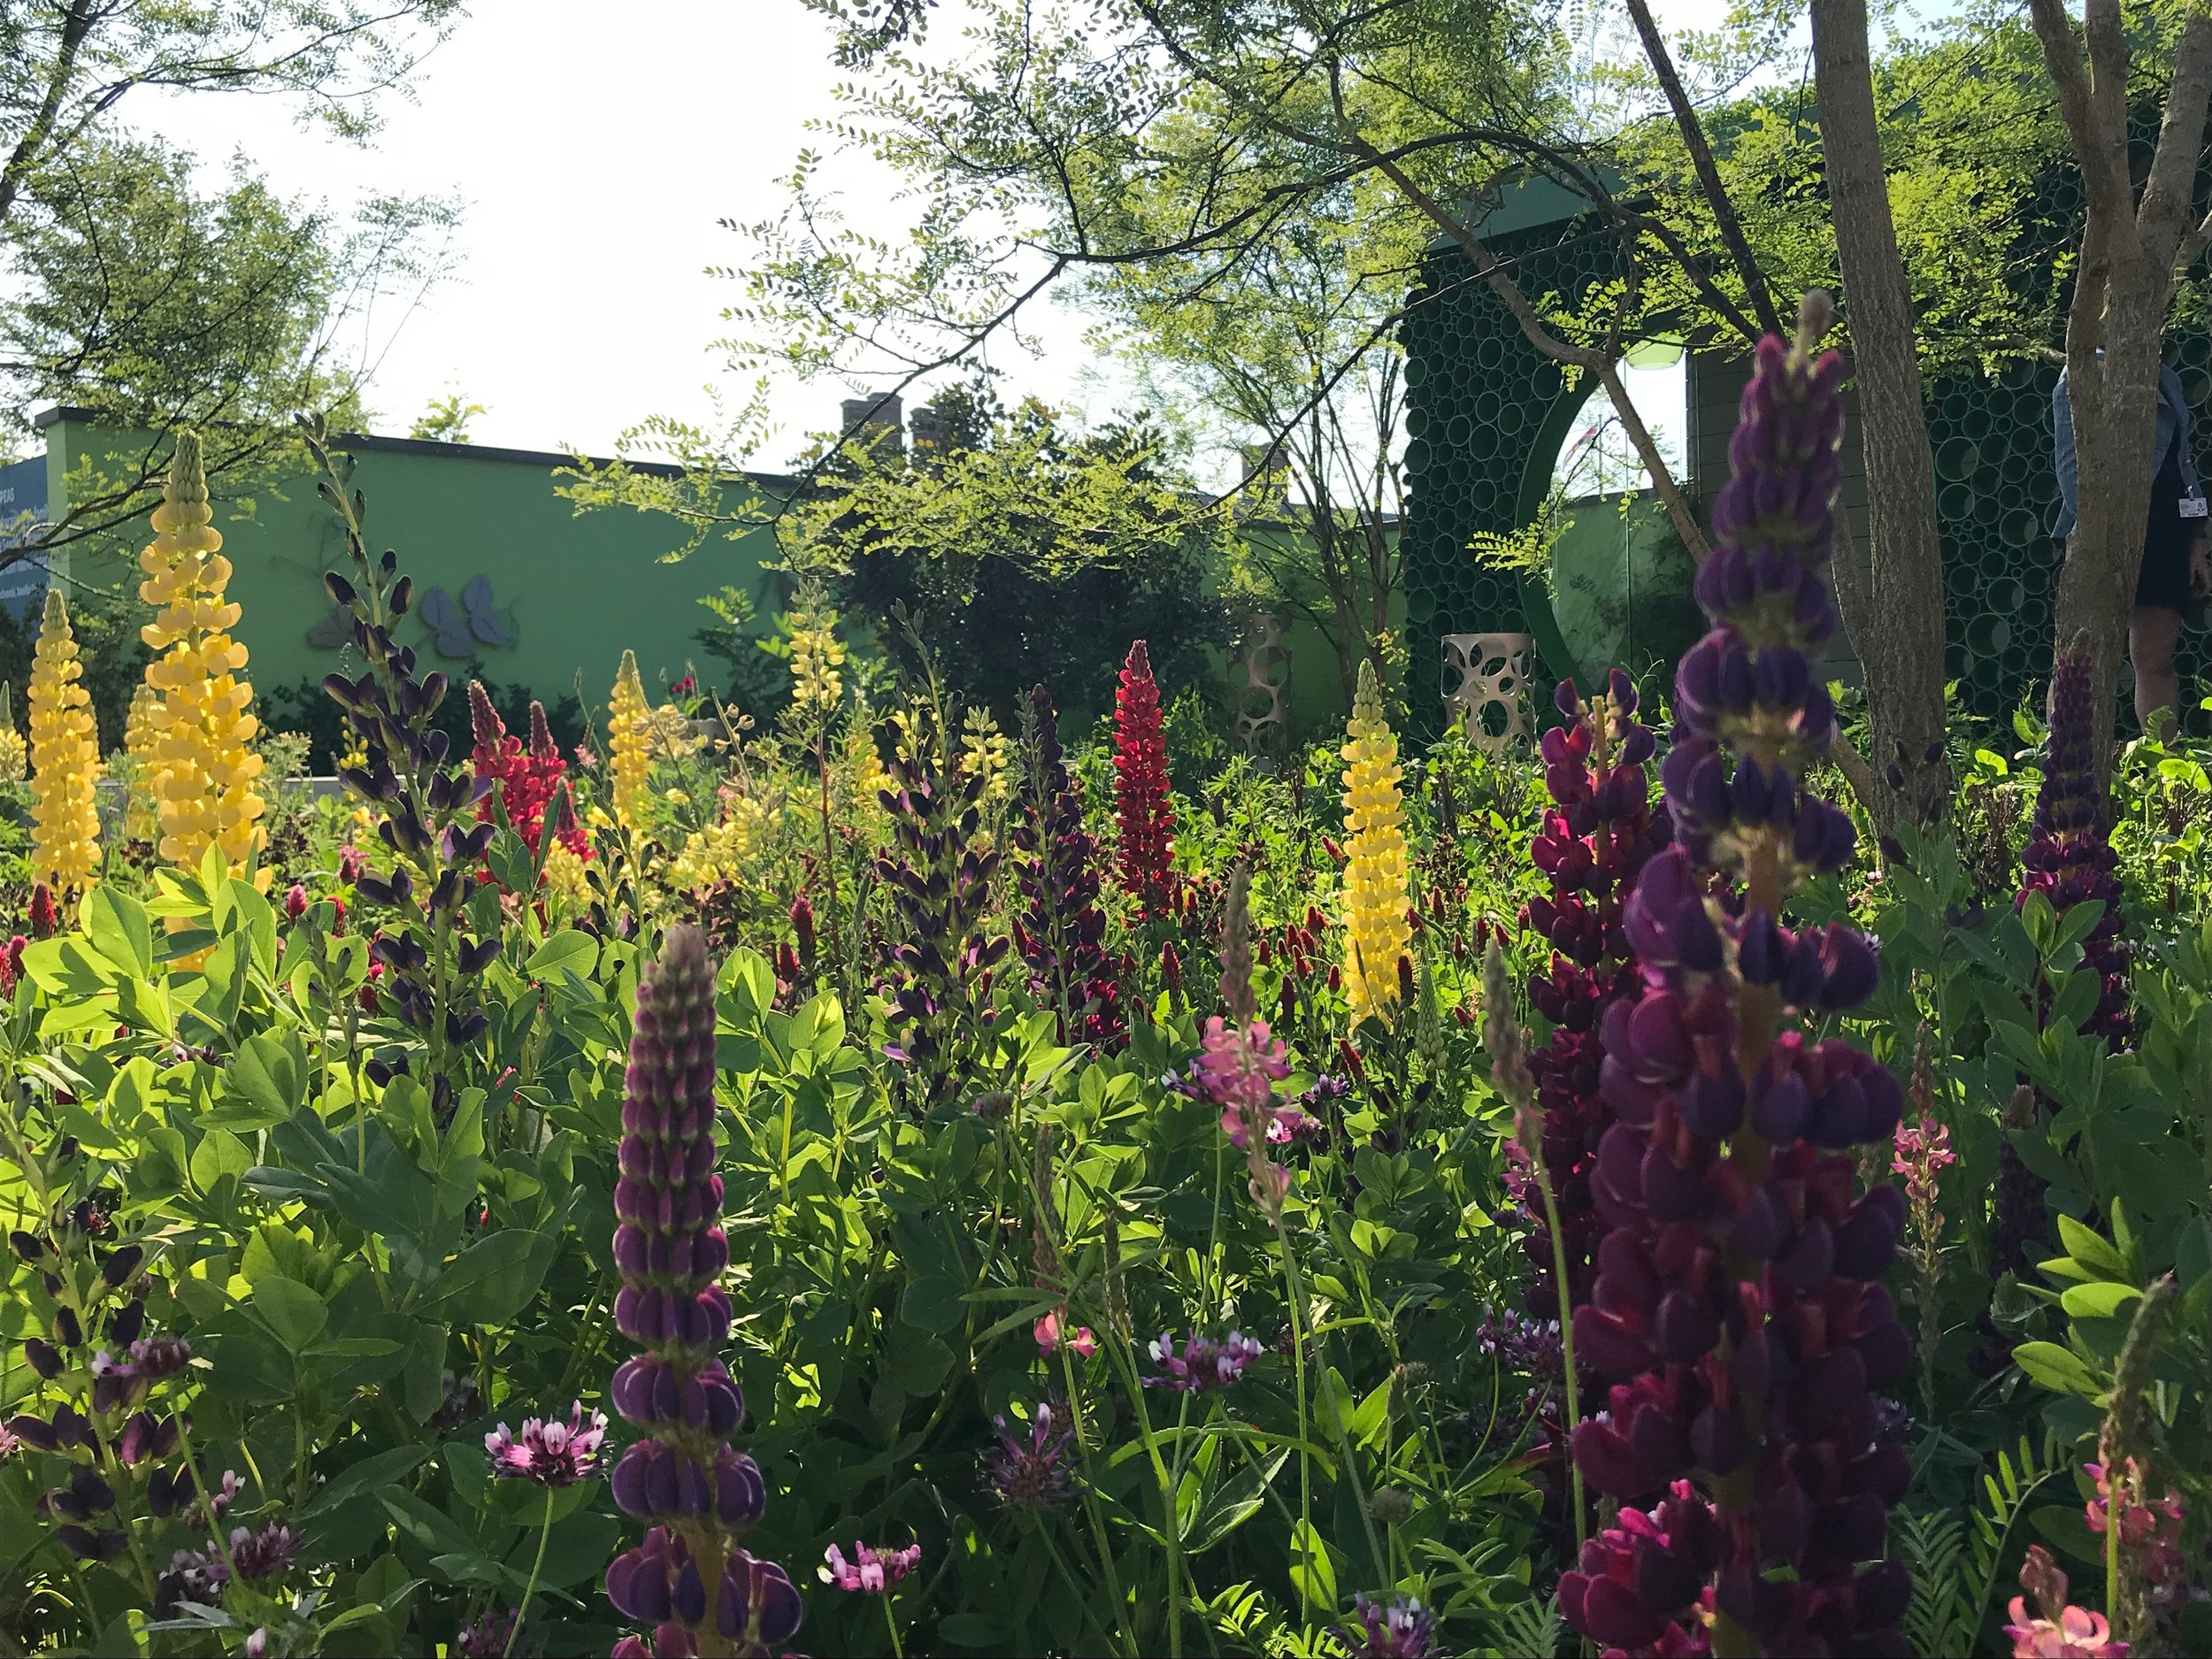 The Seedlip Garden used clashing purples, yellows and reds